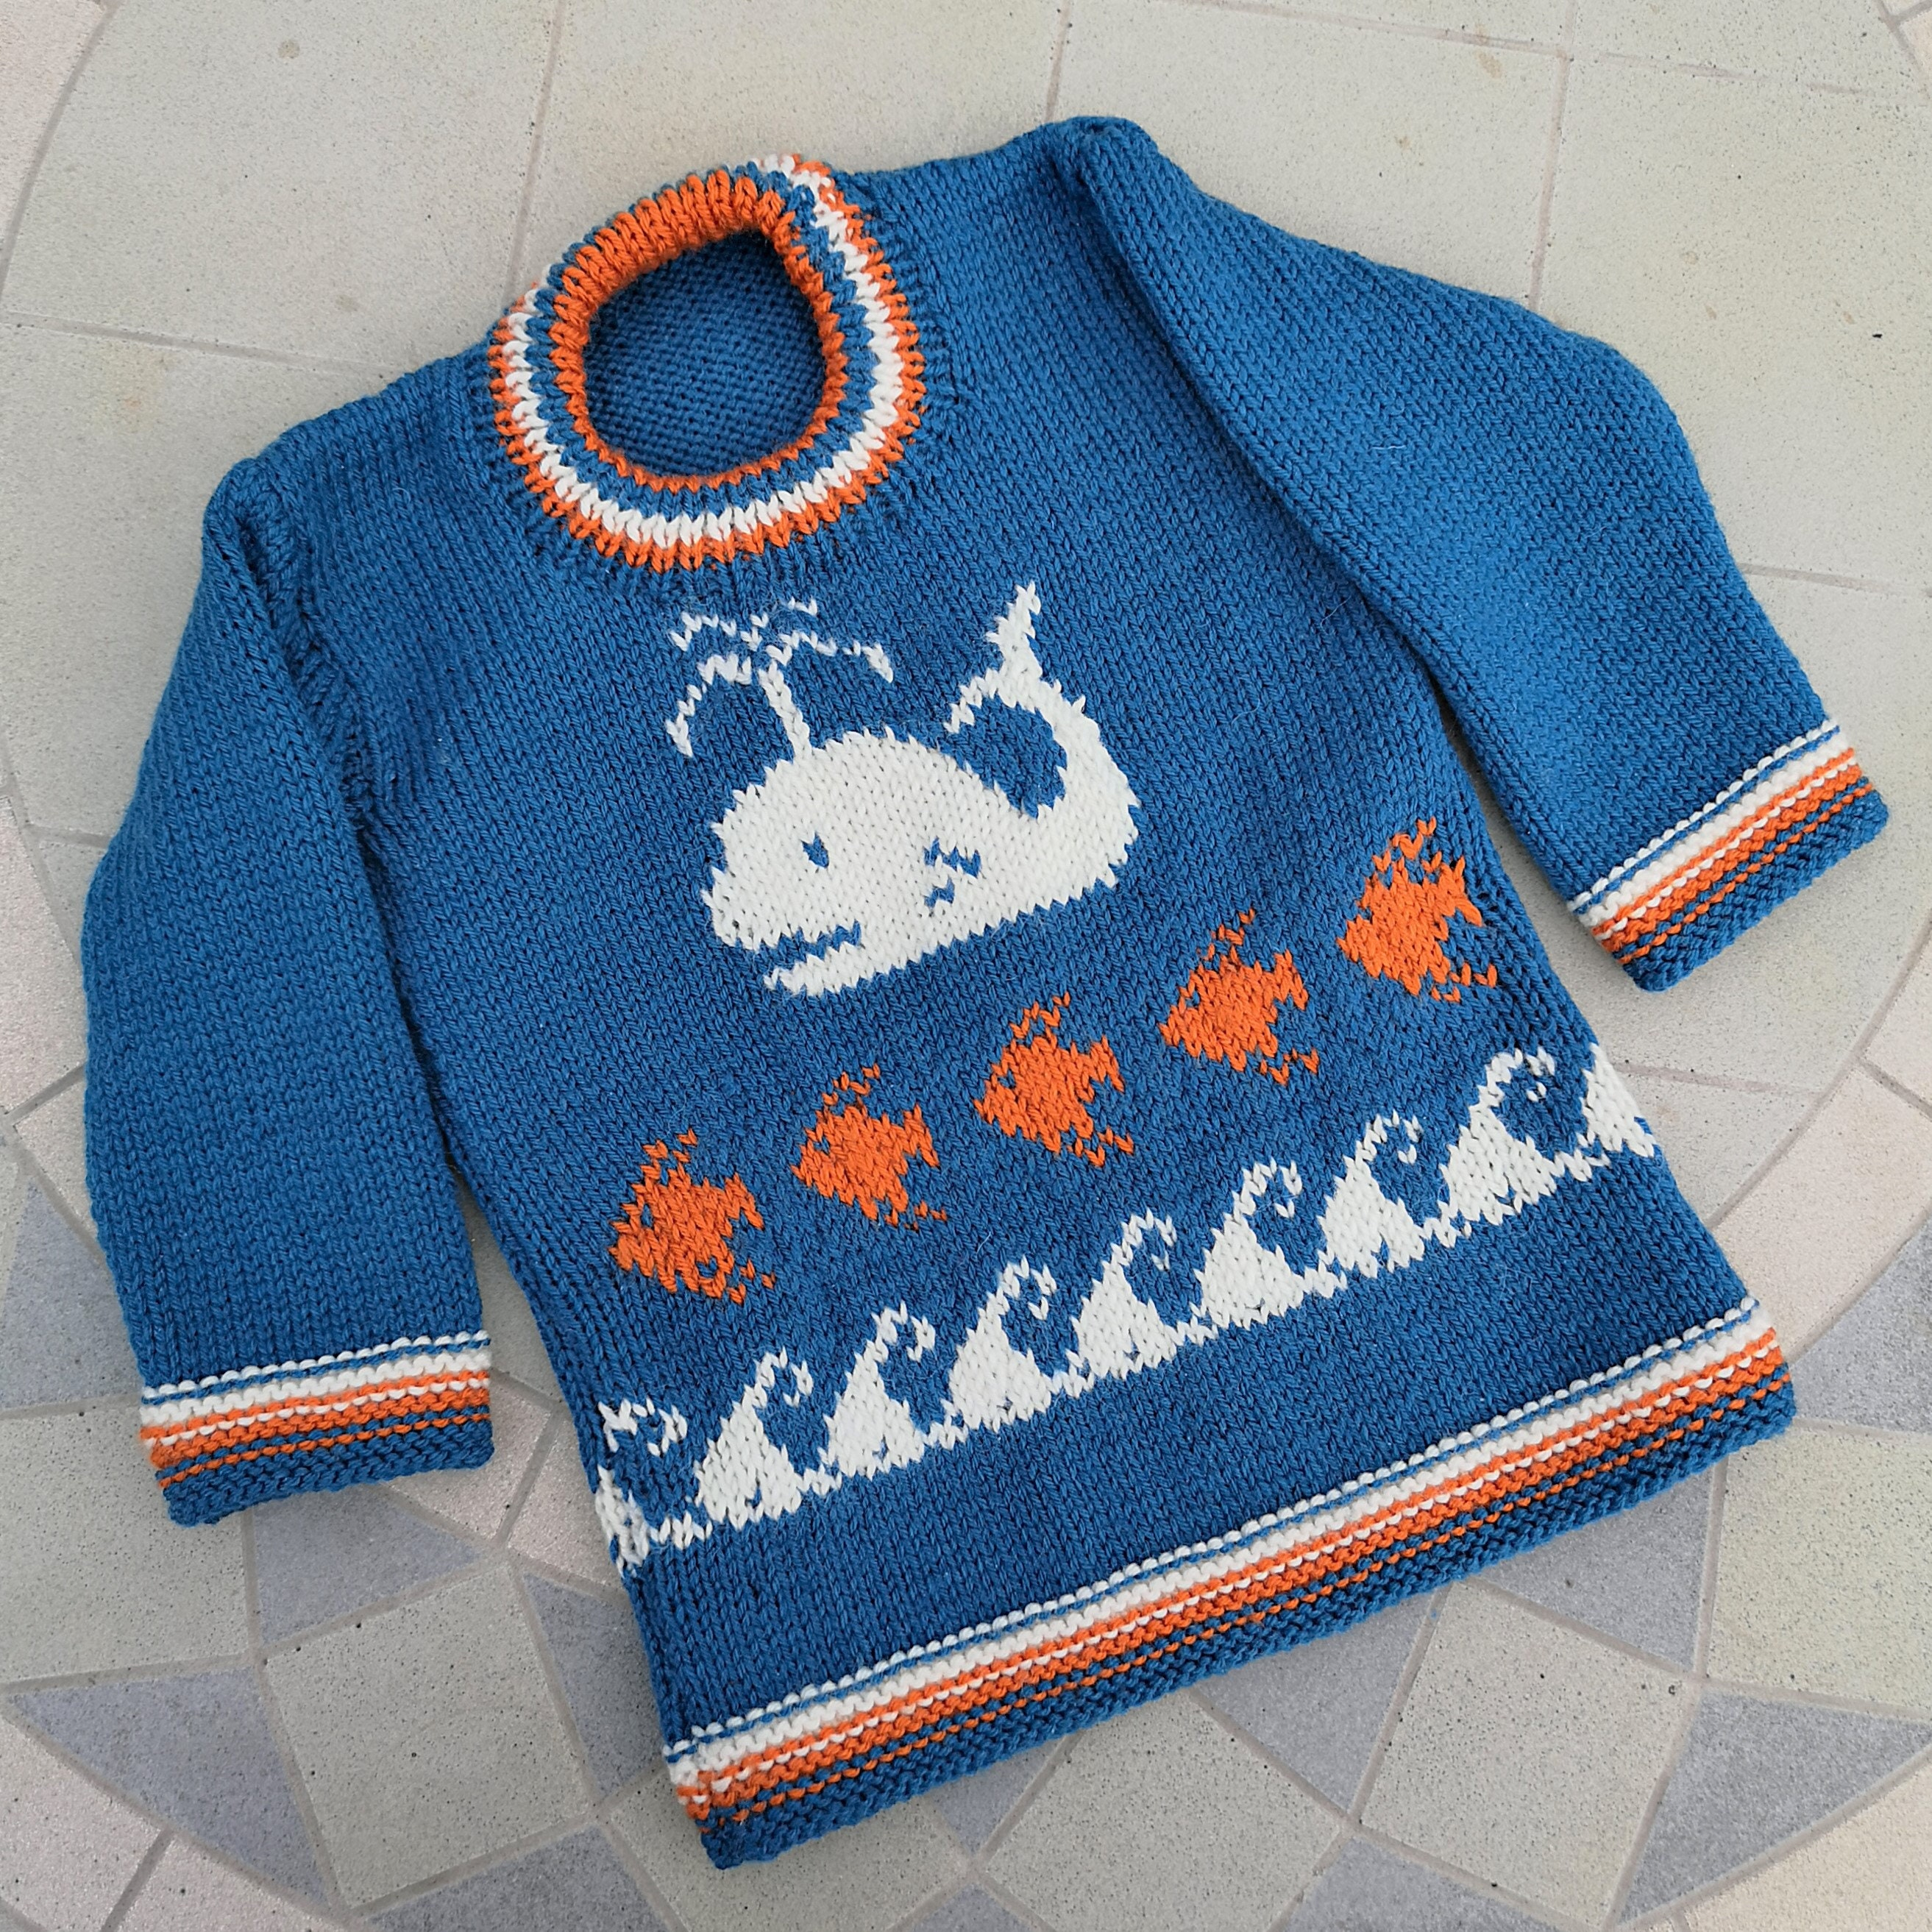 Hand knitted Whale Sweater for age 2 3 years, child's